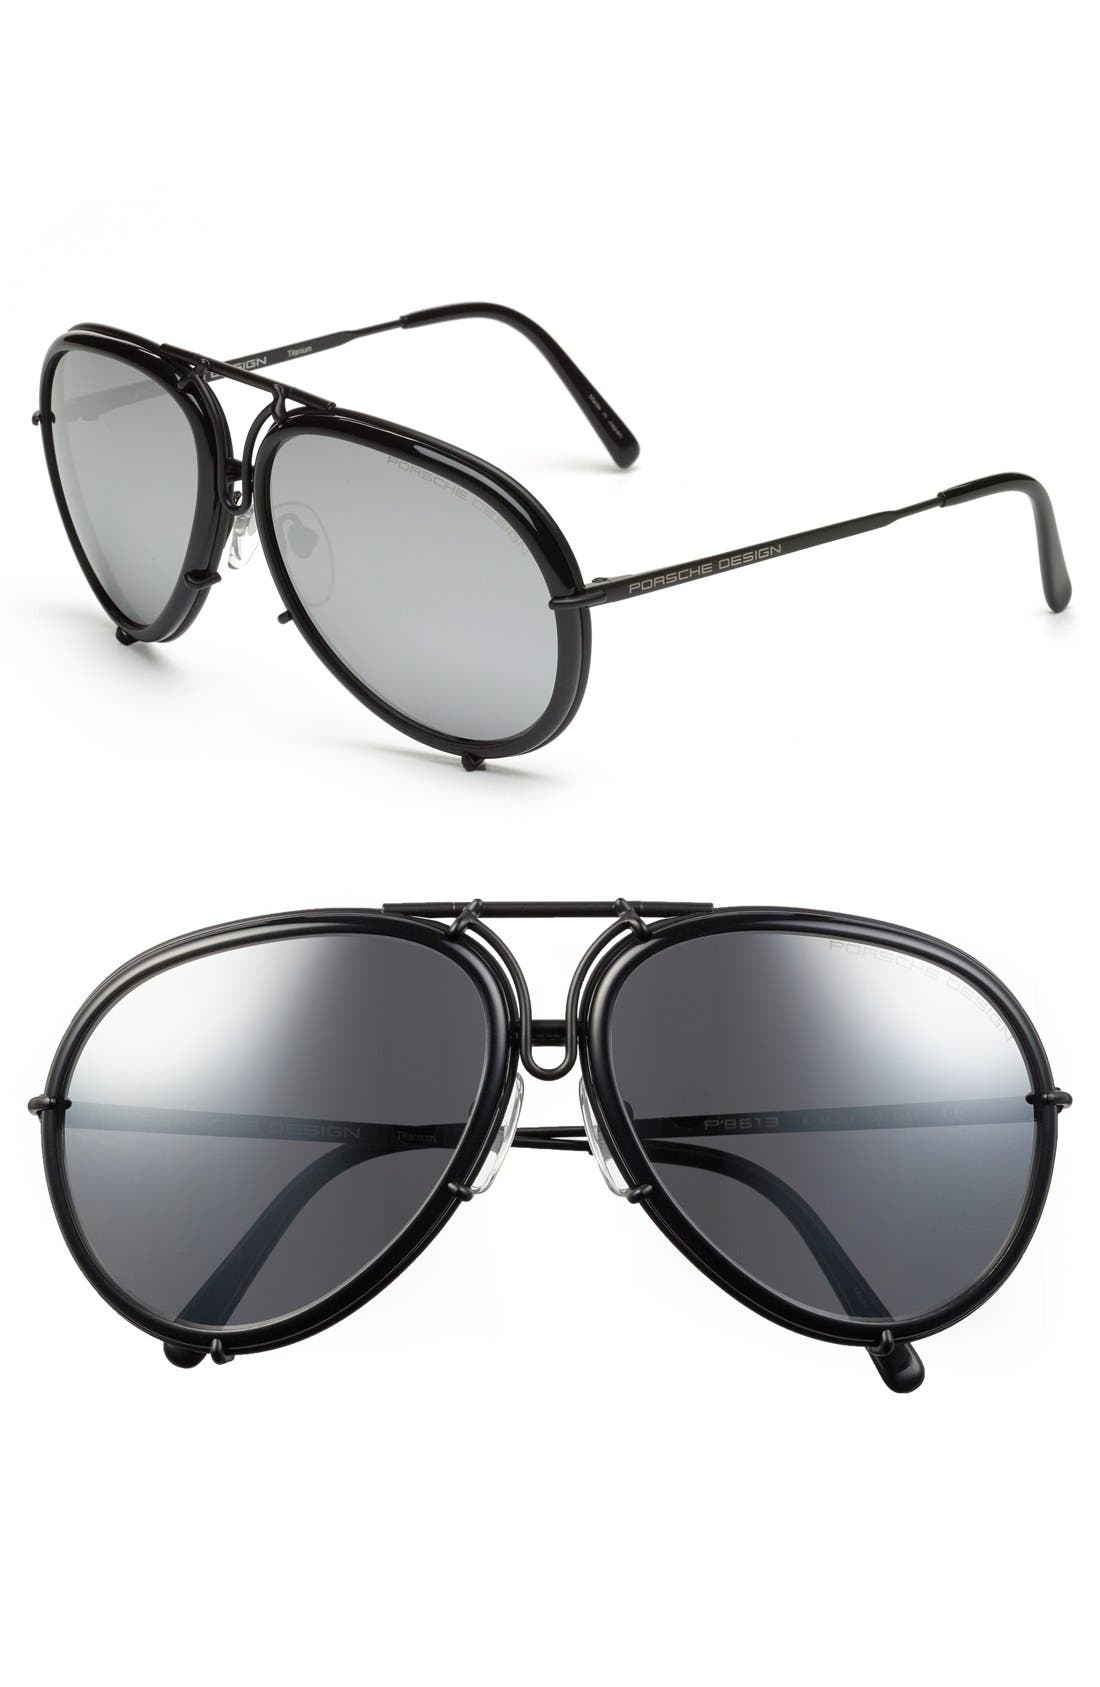 PORSCHE DESIGN 'P8613' 61mm Retro Sunglasses